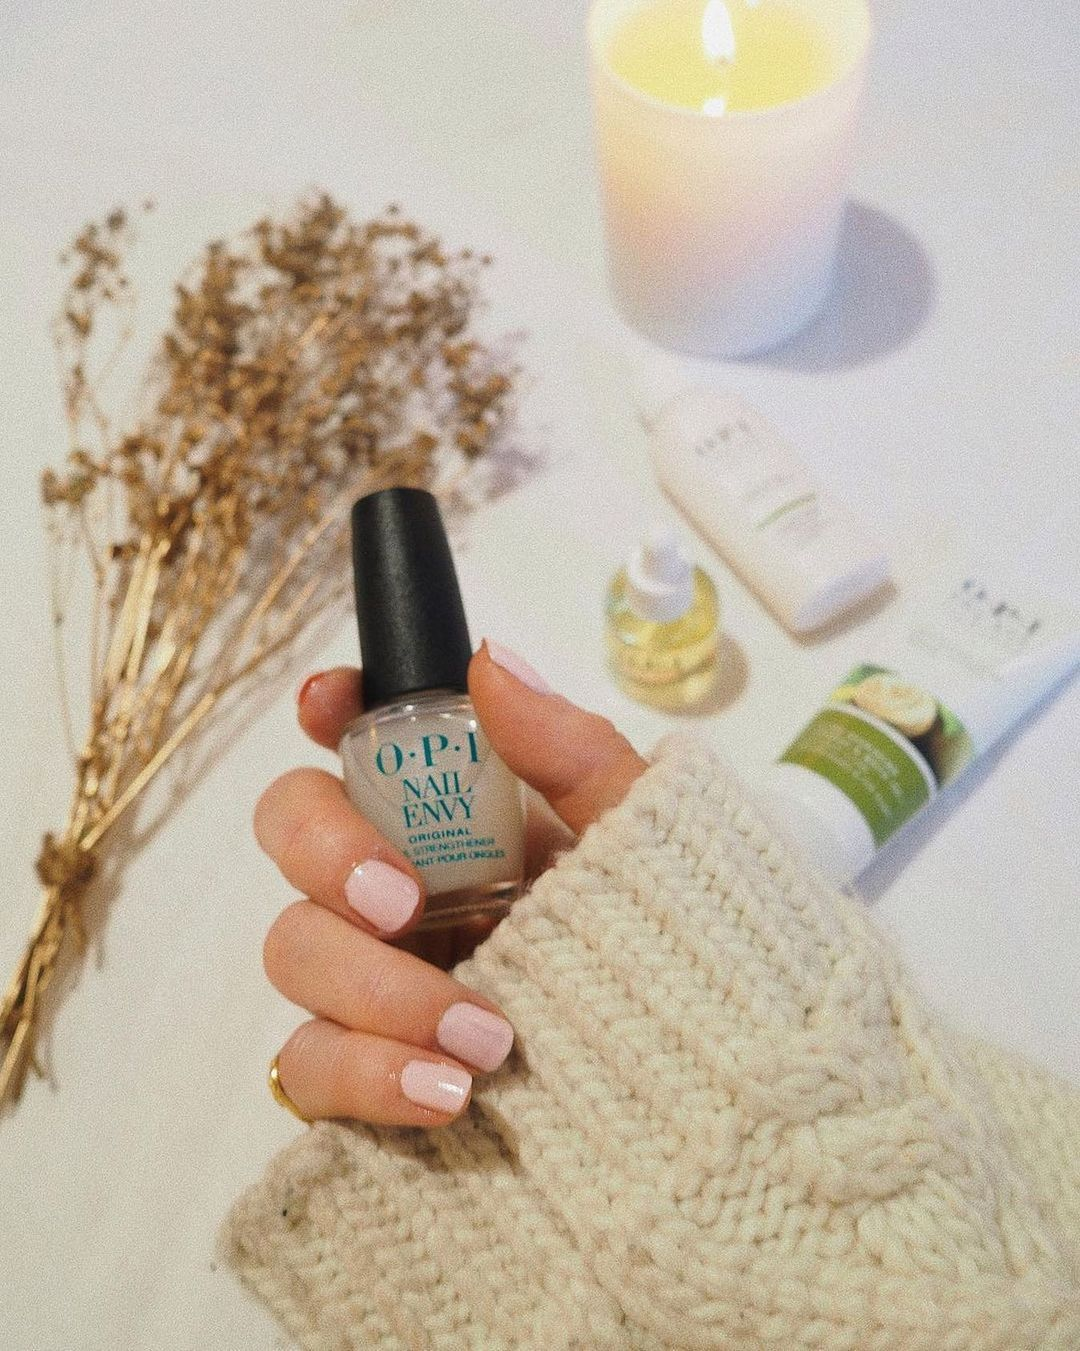 7 Nail Care Products To Add To Your Beauty Routine In 2021